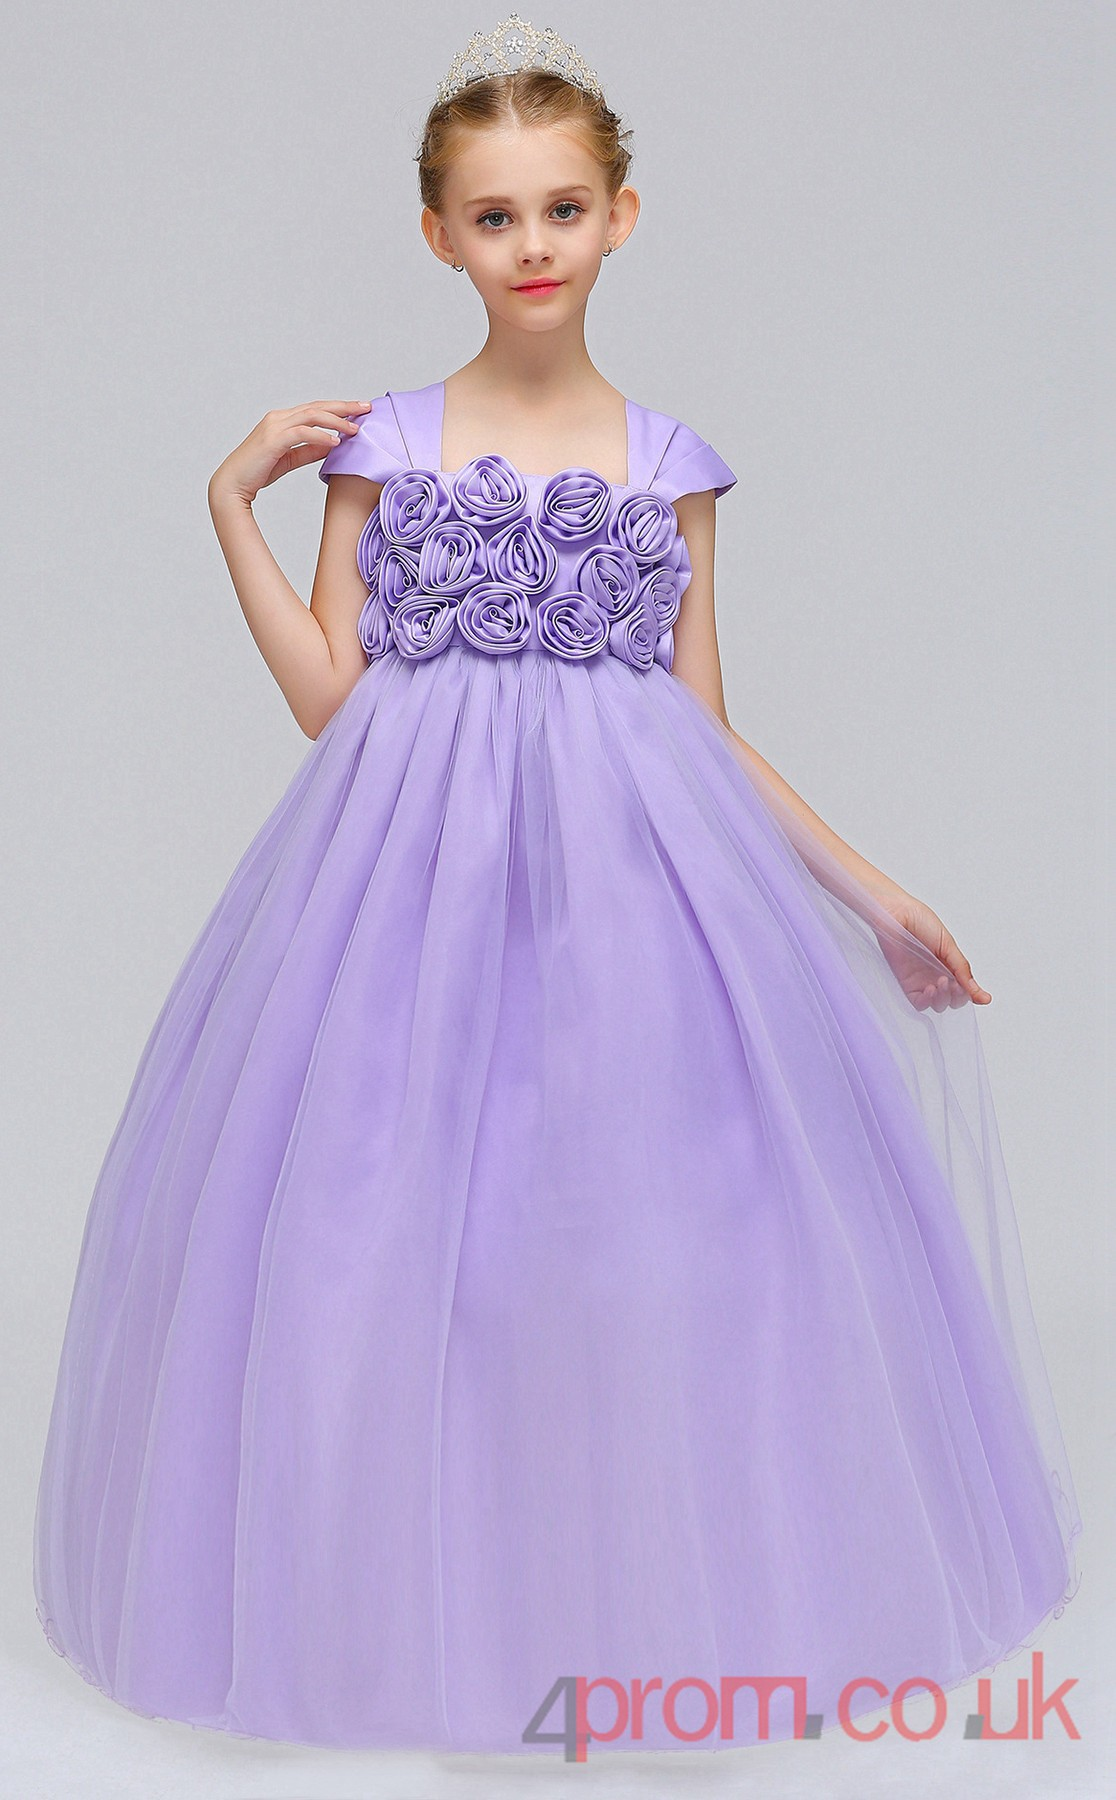 Burgundy Organza Princess Square Ankle-length Children\'s Prom Dress ...